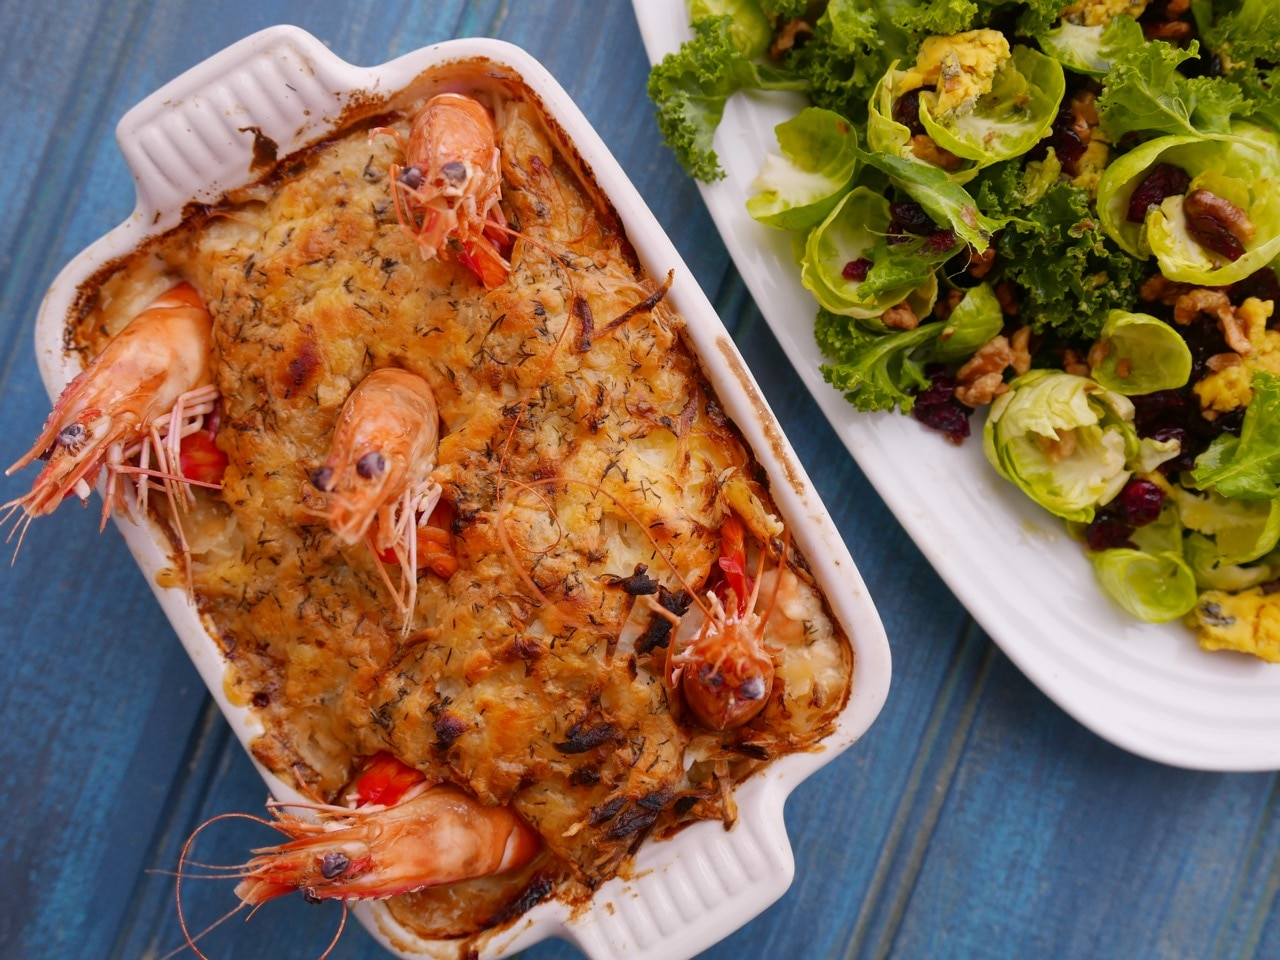 Clodagh McKenna's Fish Pie with Brussels Sprout Petal Salad